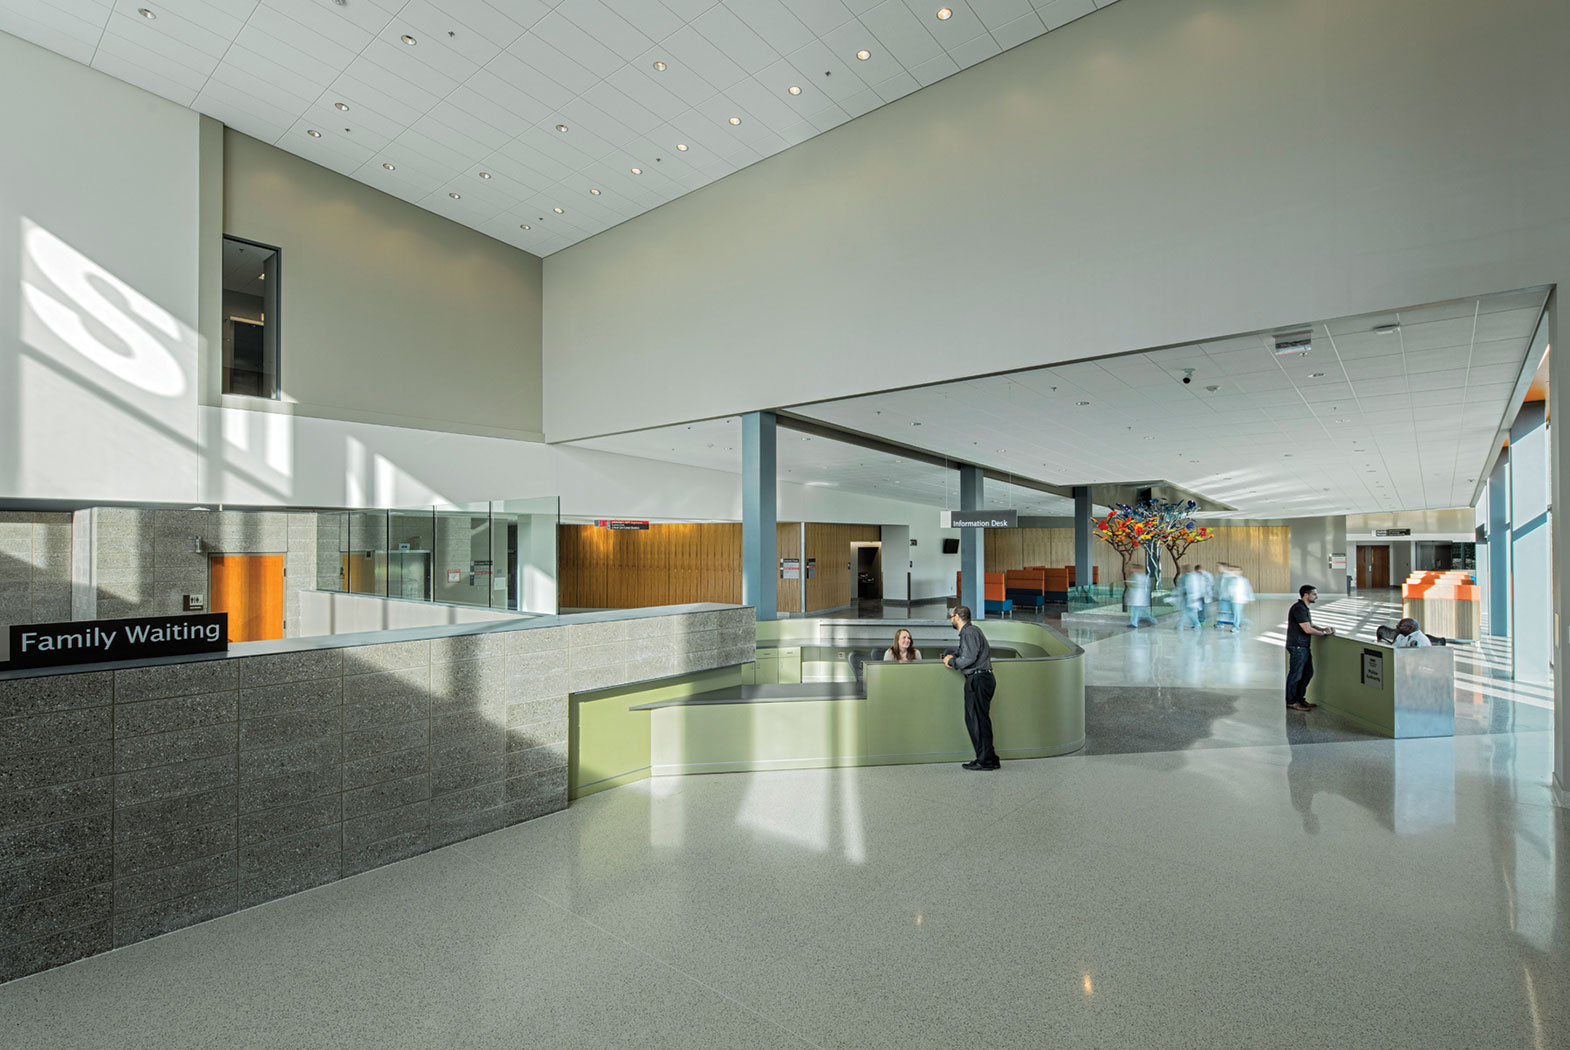 Hospital Designs To Bolster Security 2017 04 05 Health